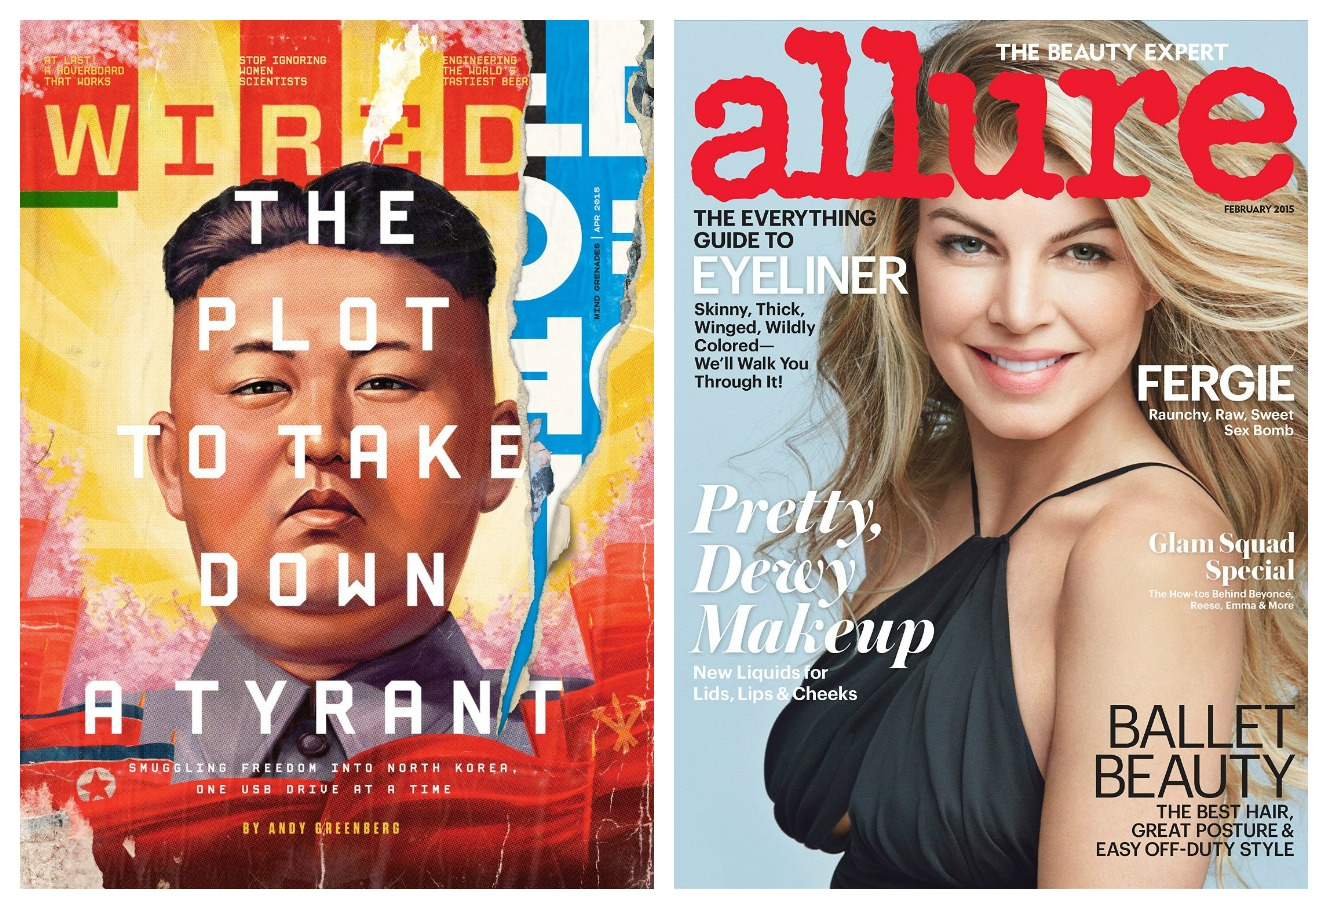 Wired and Allure Magazine Deals - Stretching a Buck | Stretching a ...